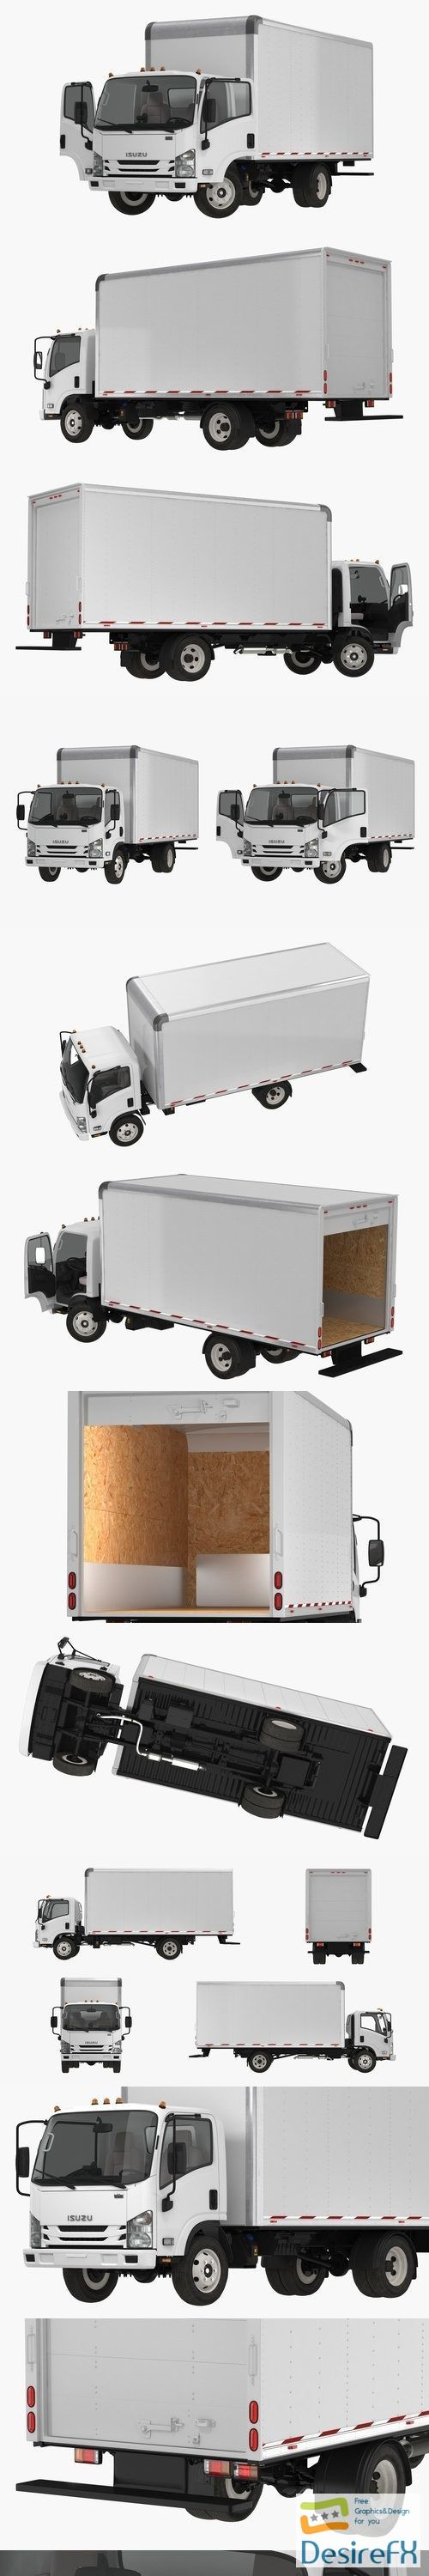 Box Truck Isuzu NPR 2018 Rigged 3D Model